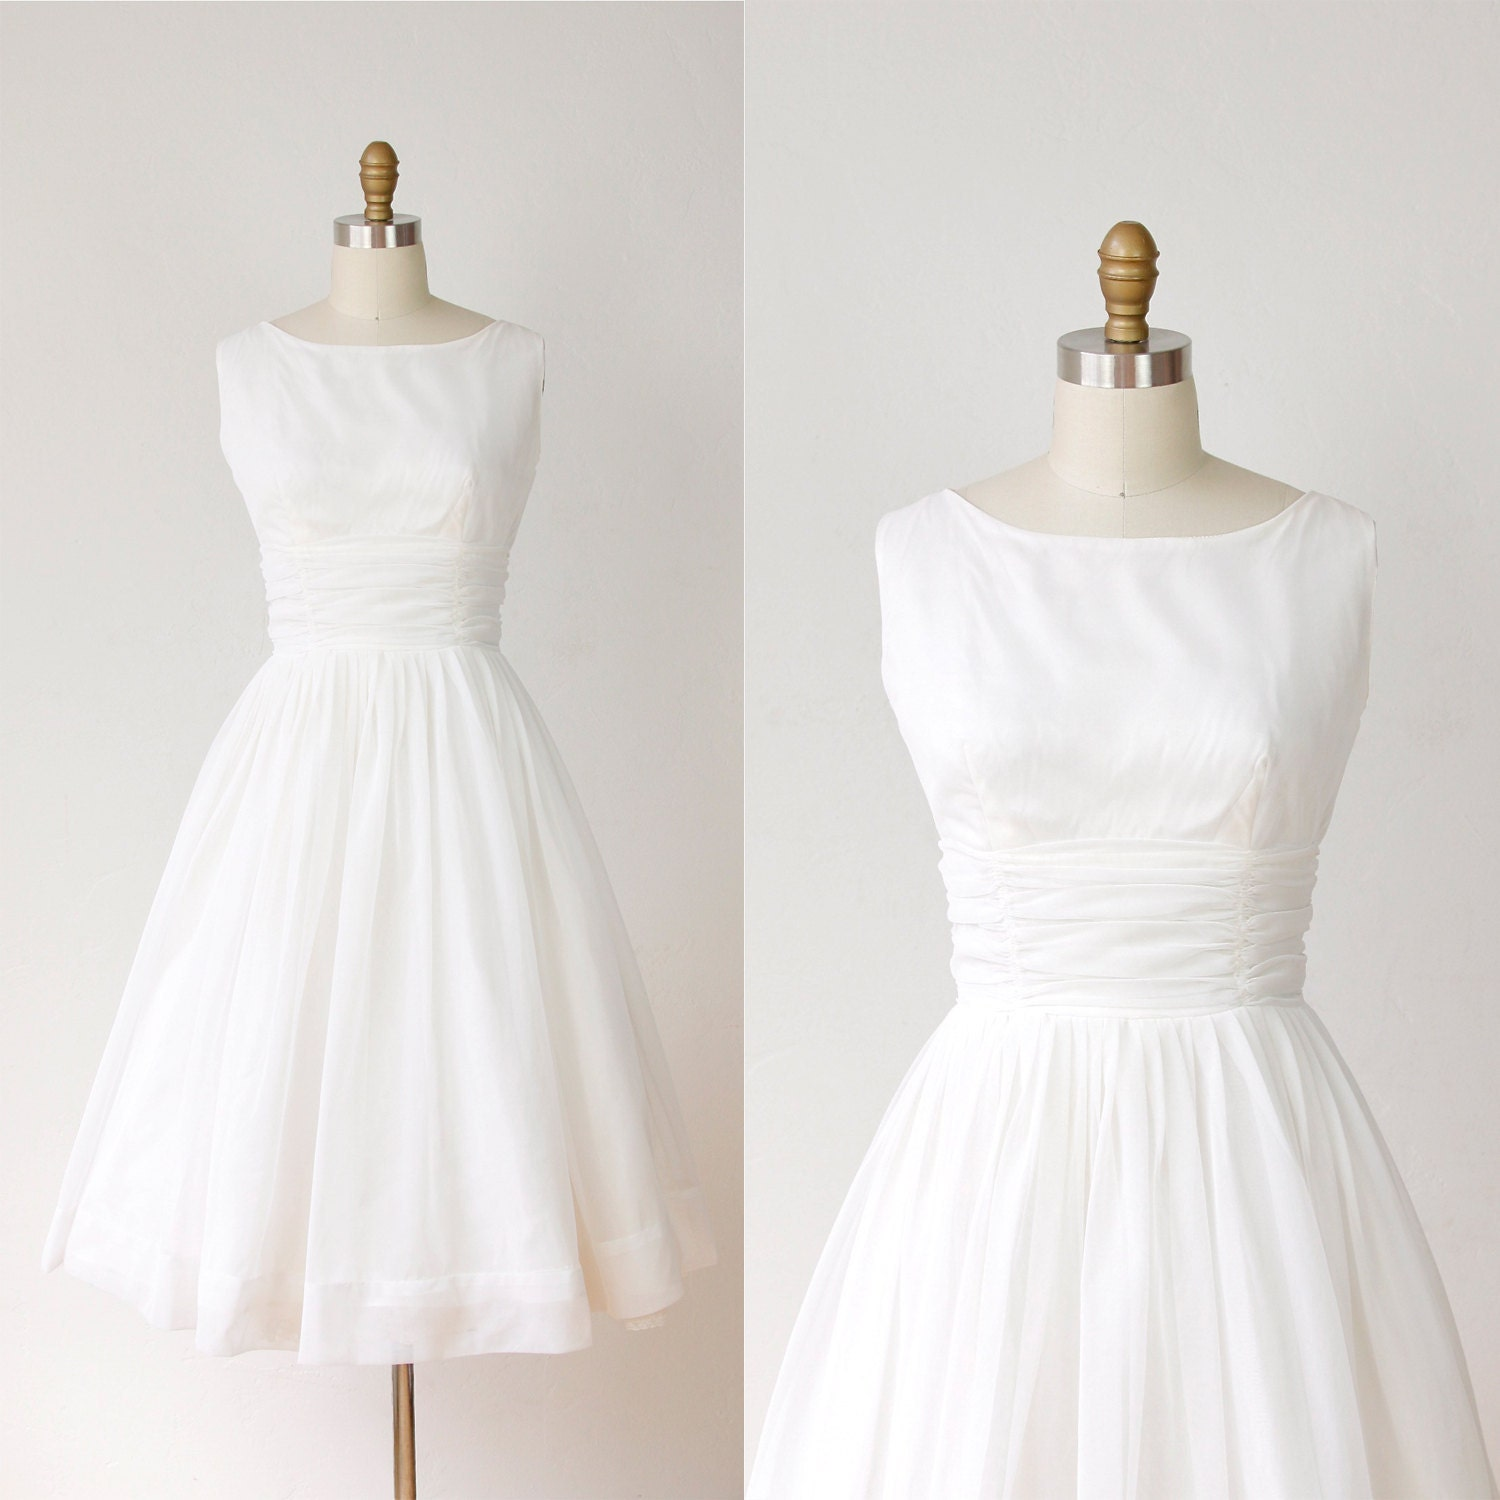 1950s full skirt wedding dress white chiffon vintage for Full skirt wedding dress